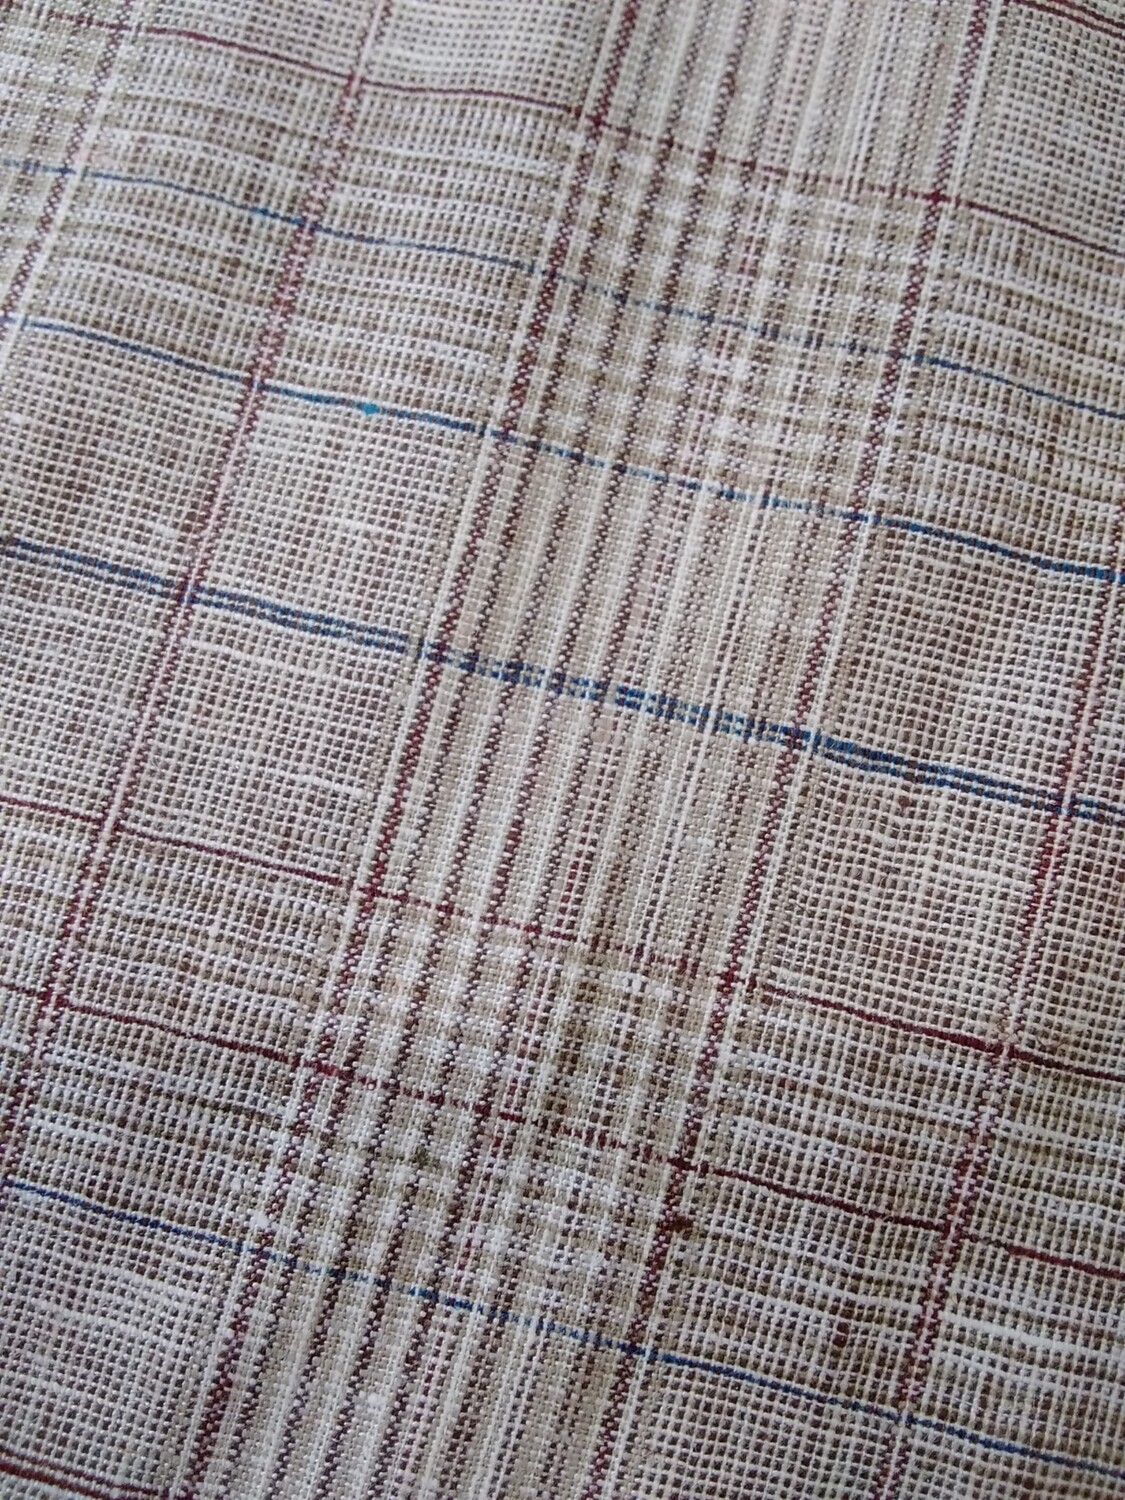 Linen Check Suiting